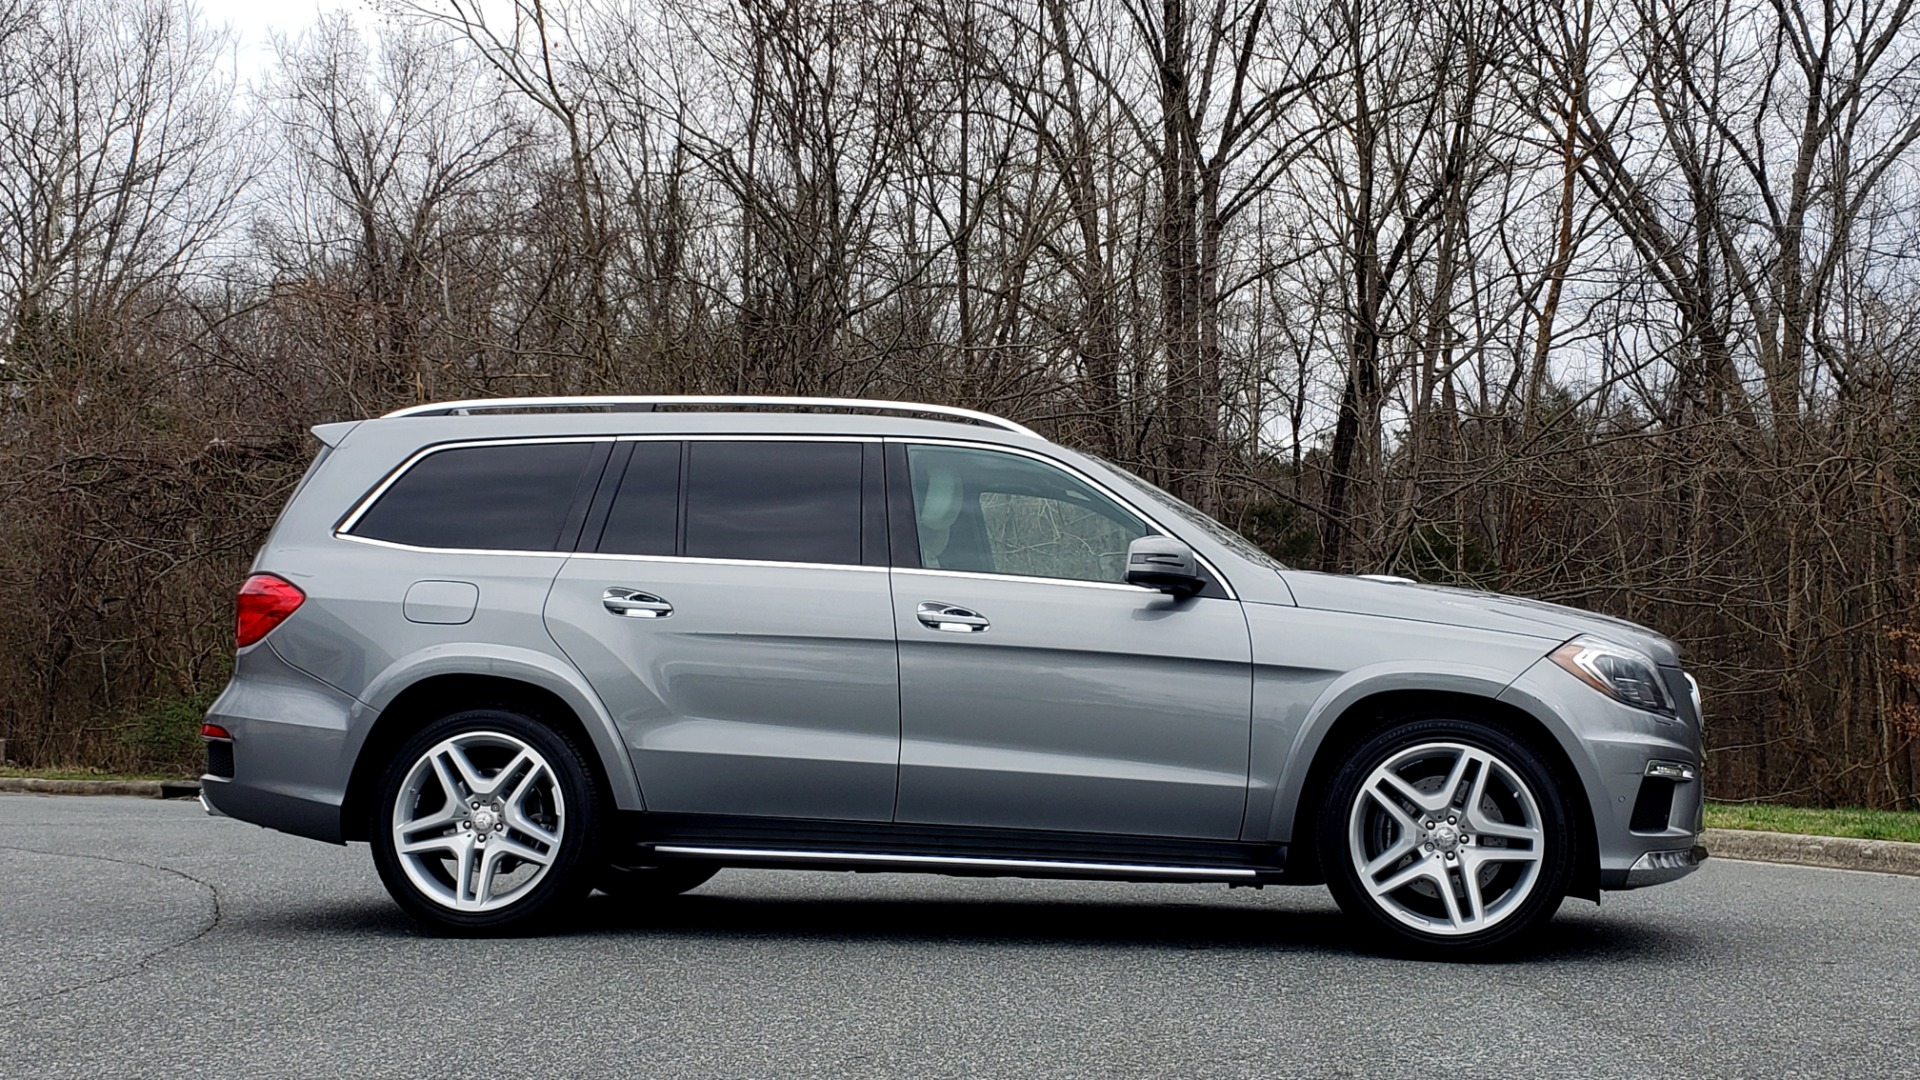 Used 2016 Mercedes-Benz GL 550 4MATIC / NAV / DRVR ASST / DUAL-ROOF / REARVIEW for sale Sold at Formula Imports in Charlotte NC 28227 5